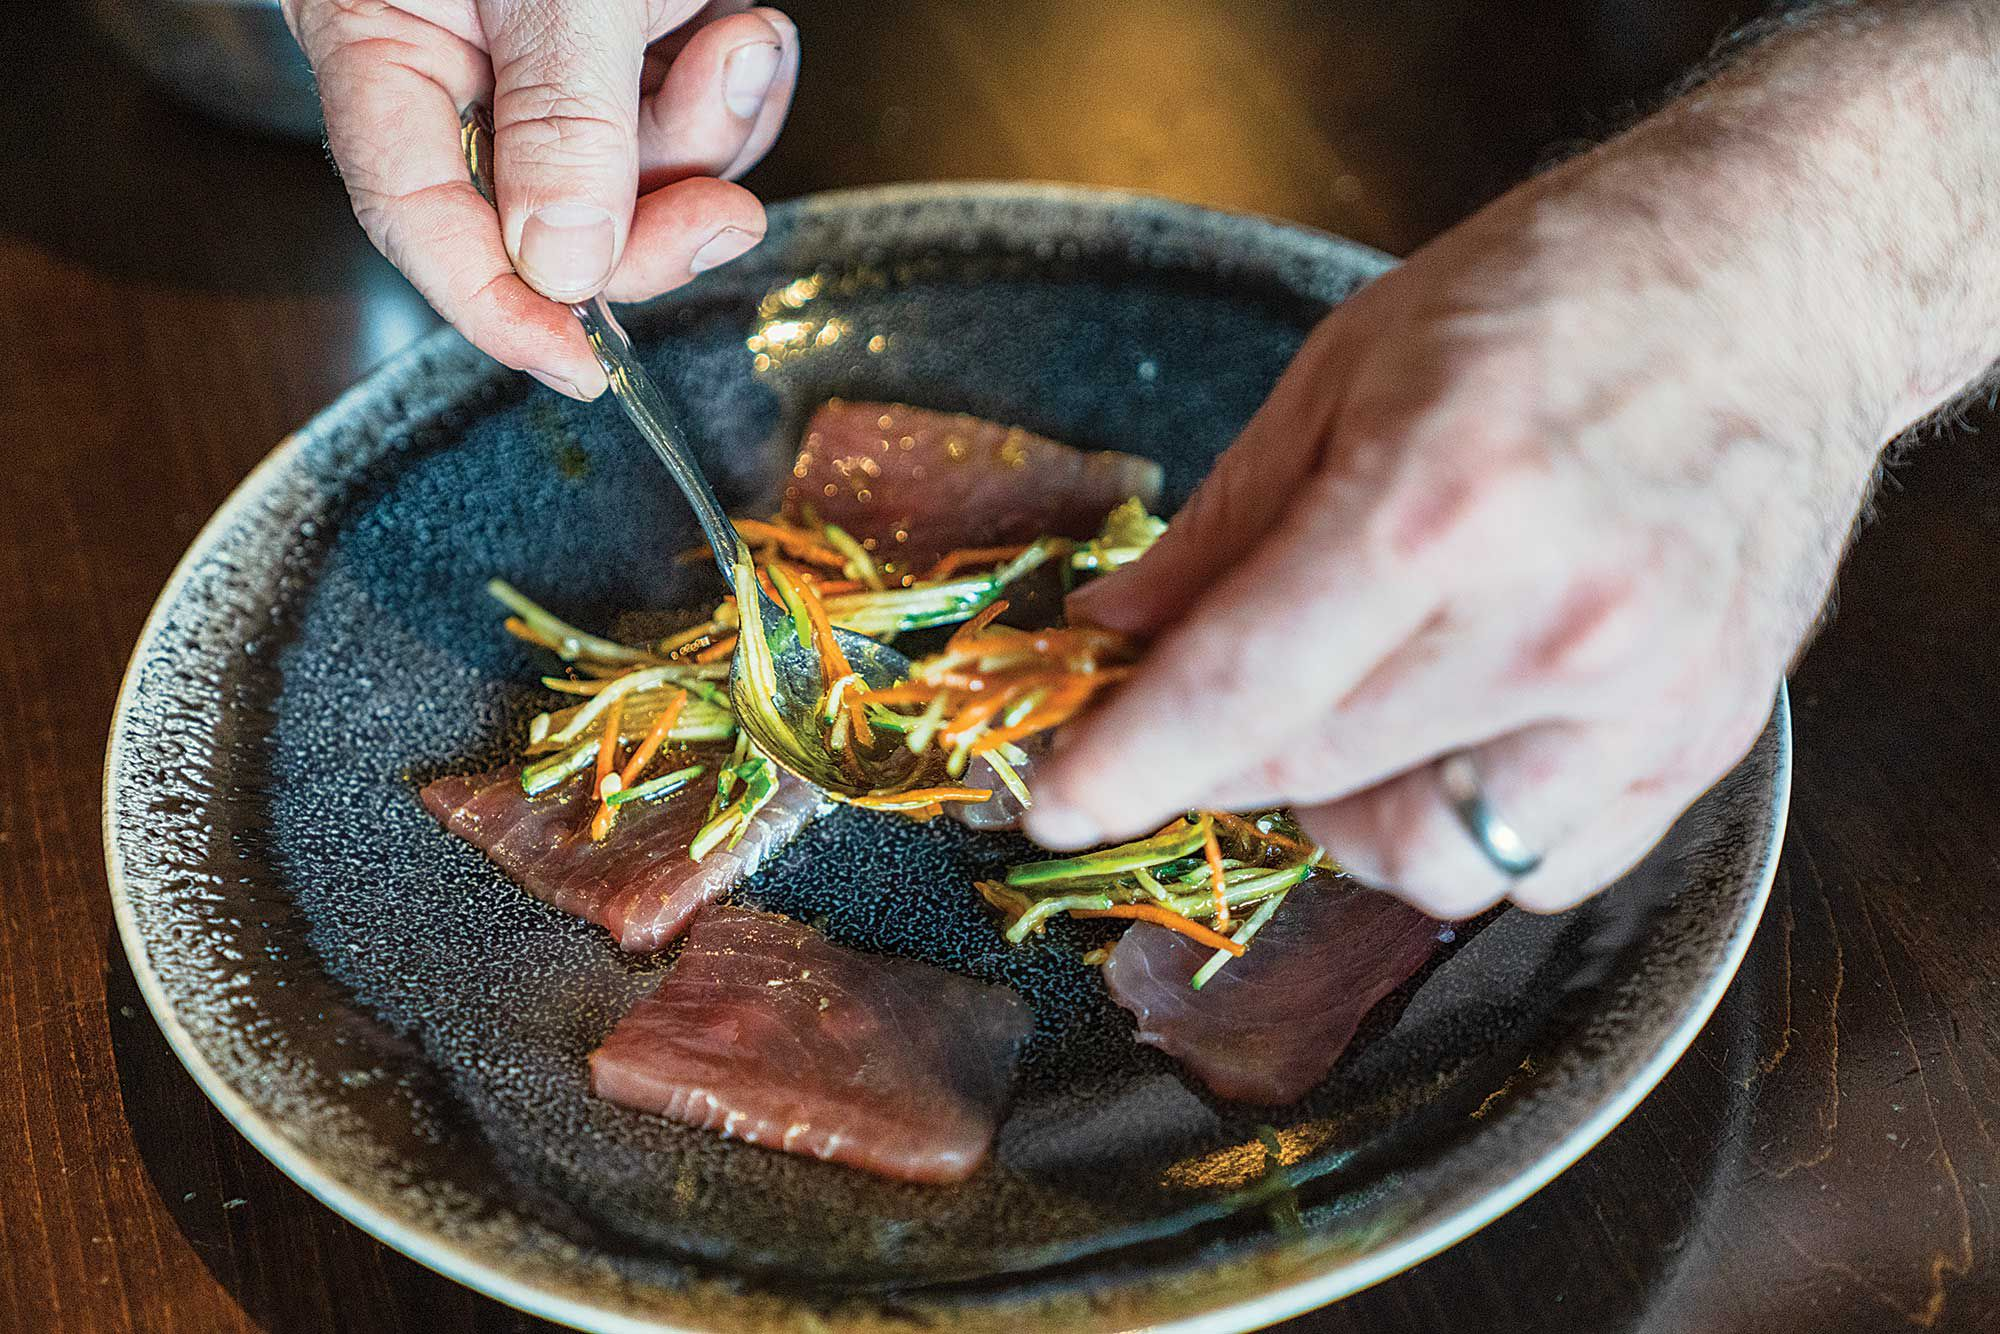 Plating and presentation is as easy as arranging the crudo and garnishing with the green papaya slaw.